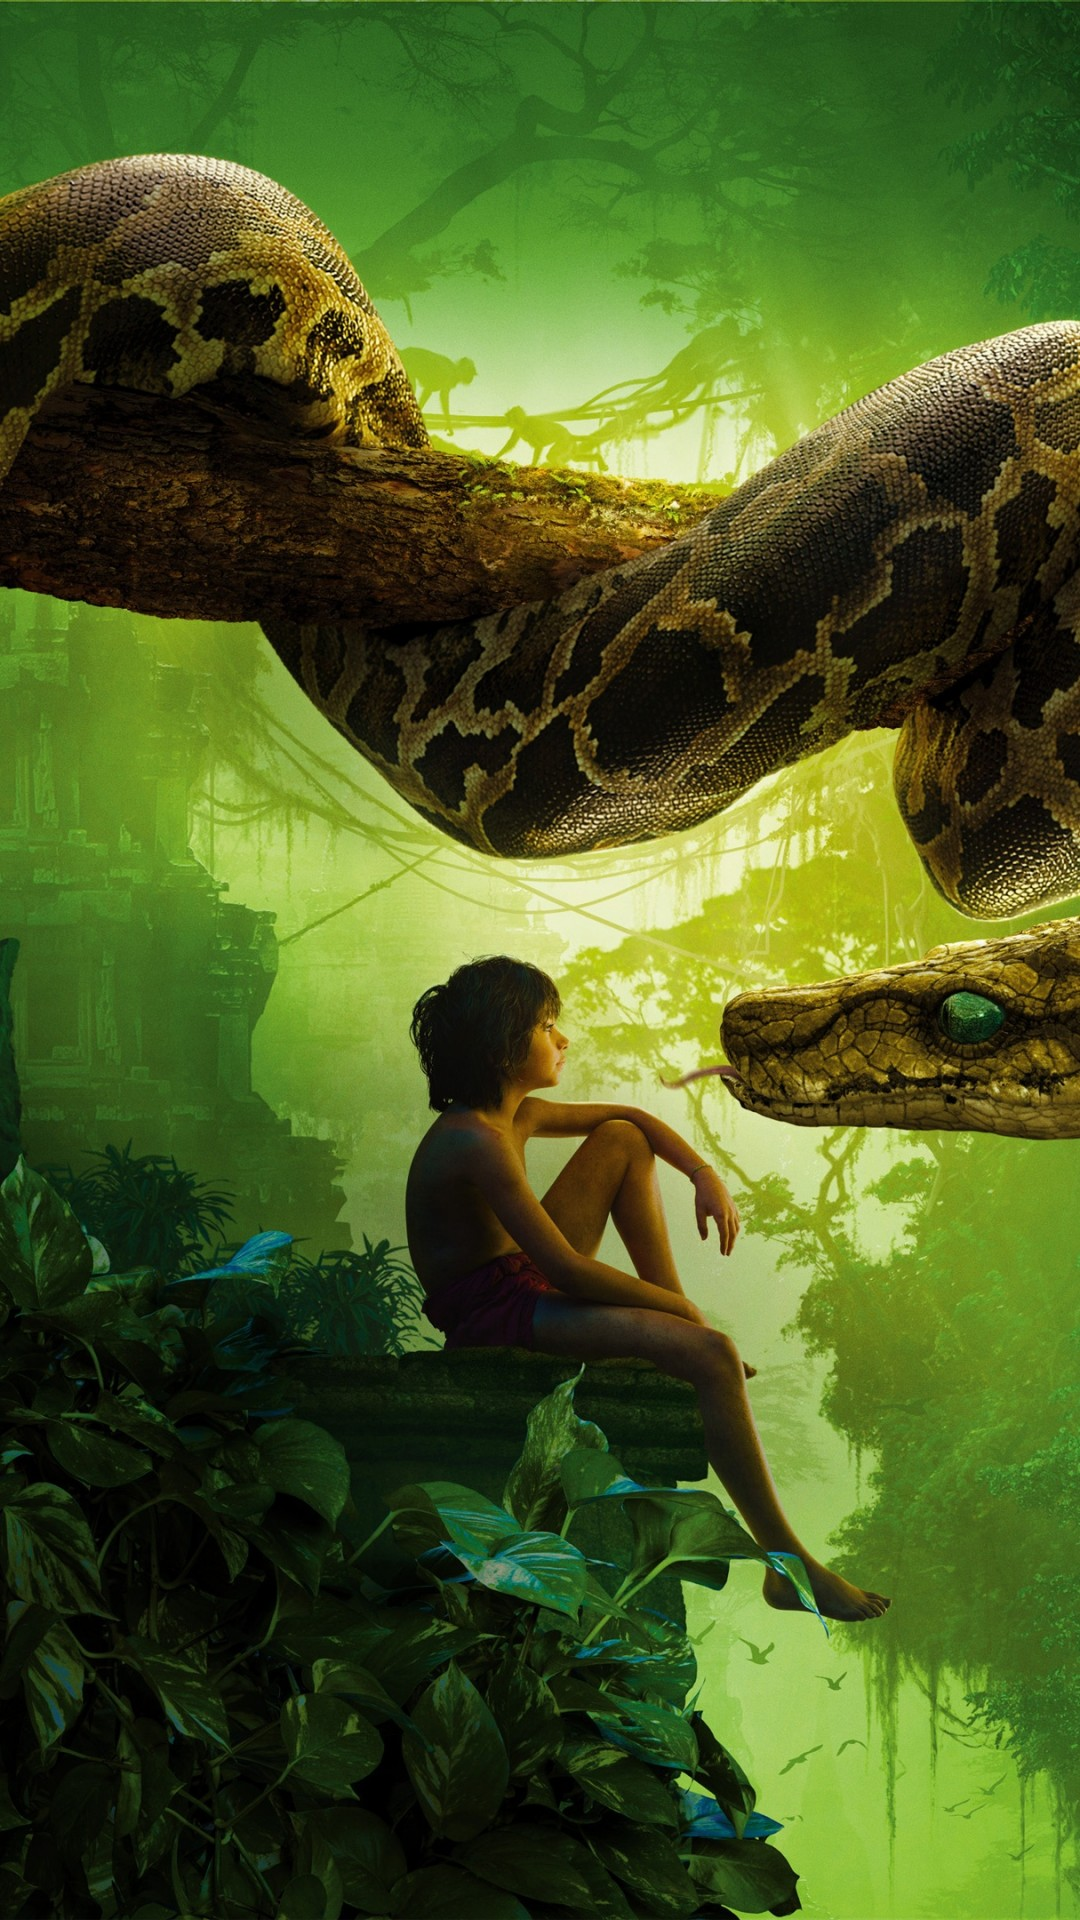 wallpaper the jungle book, snake kaa, mowgli, best movies of 2016